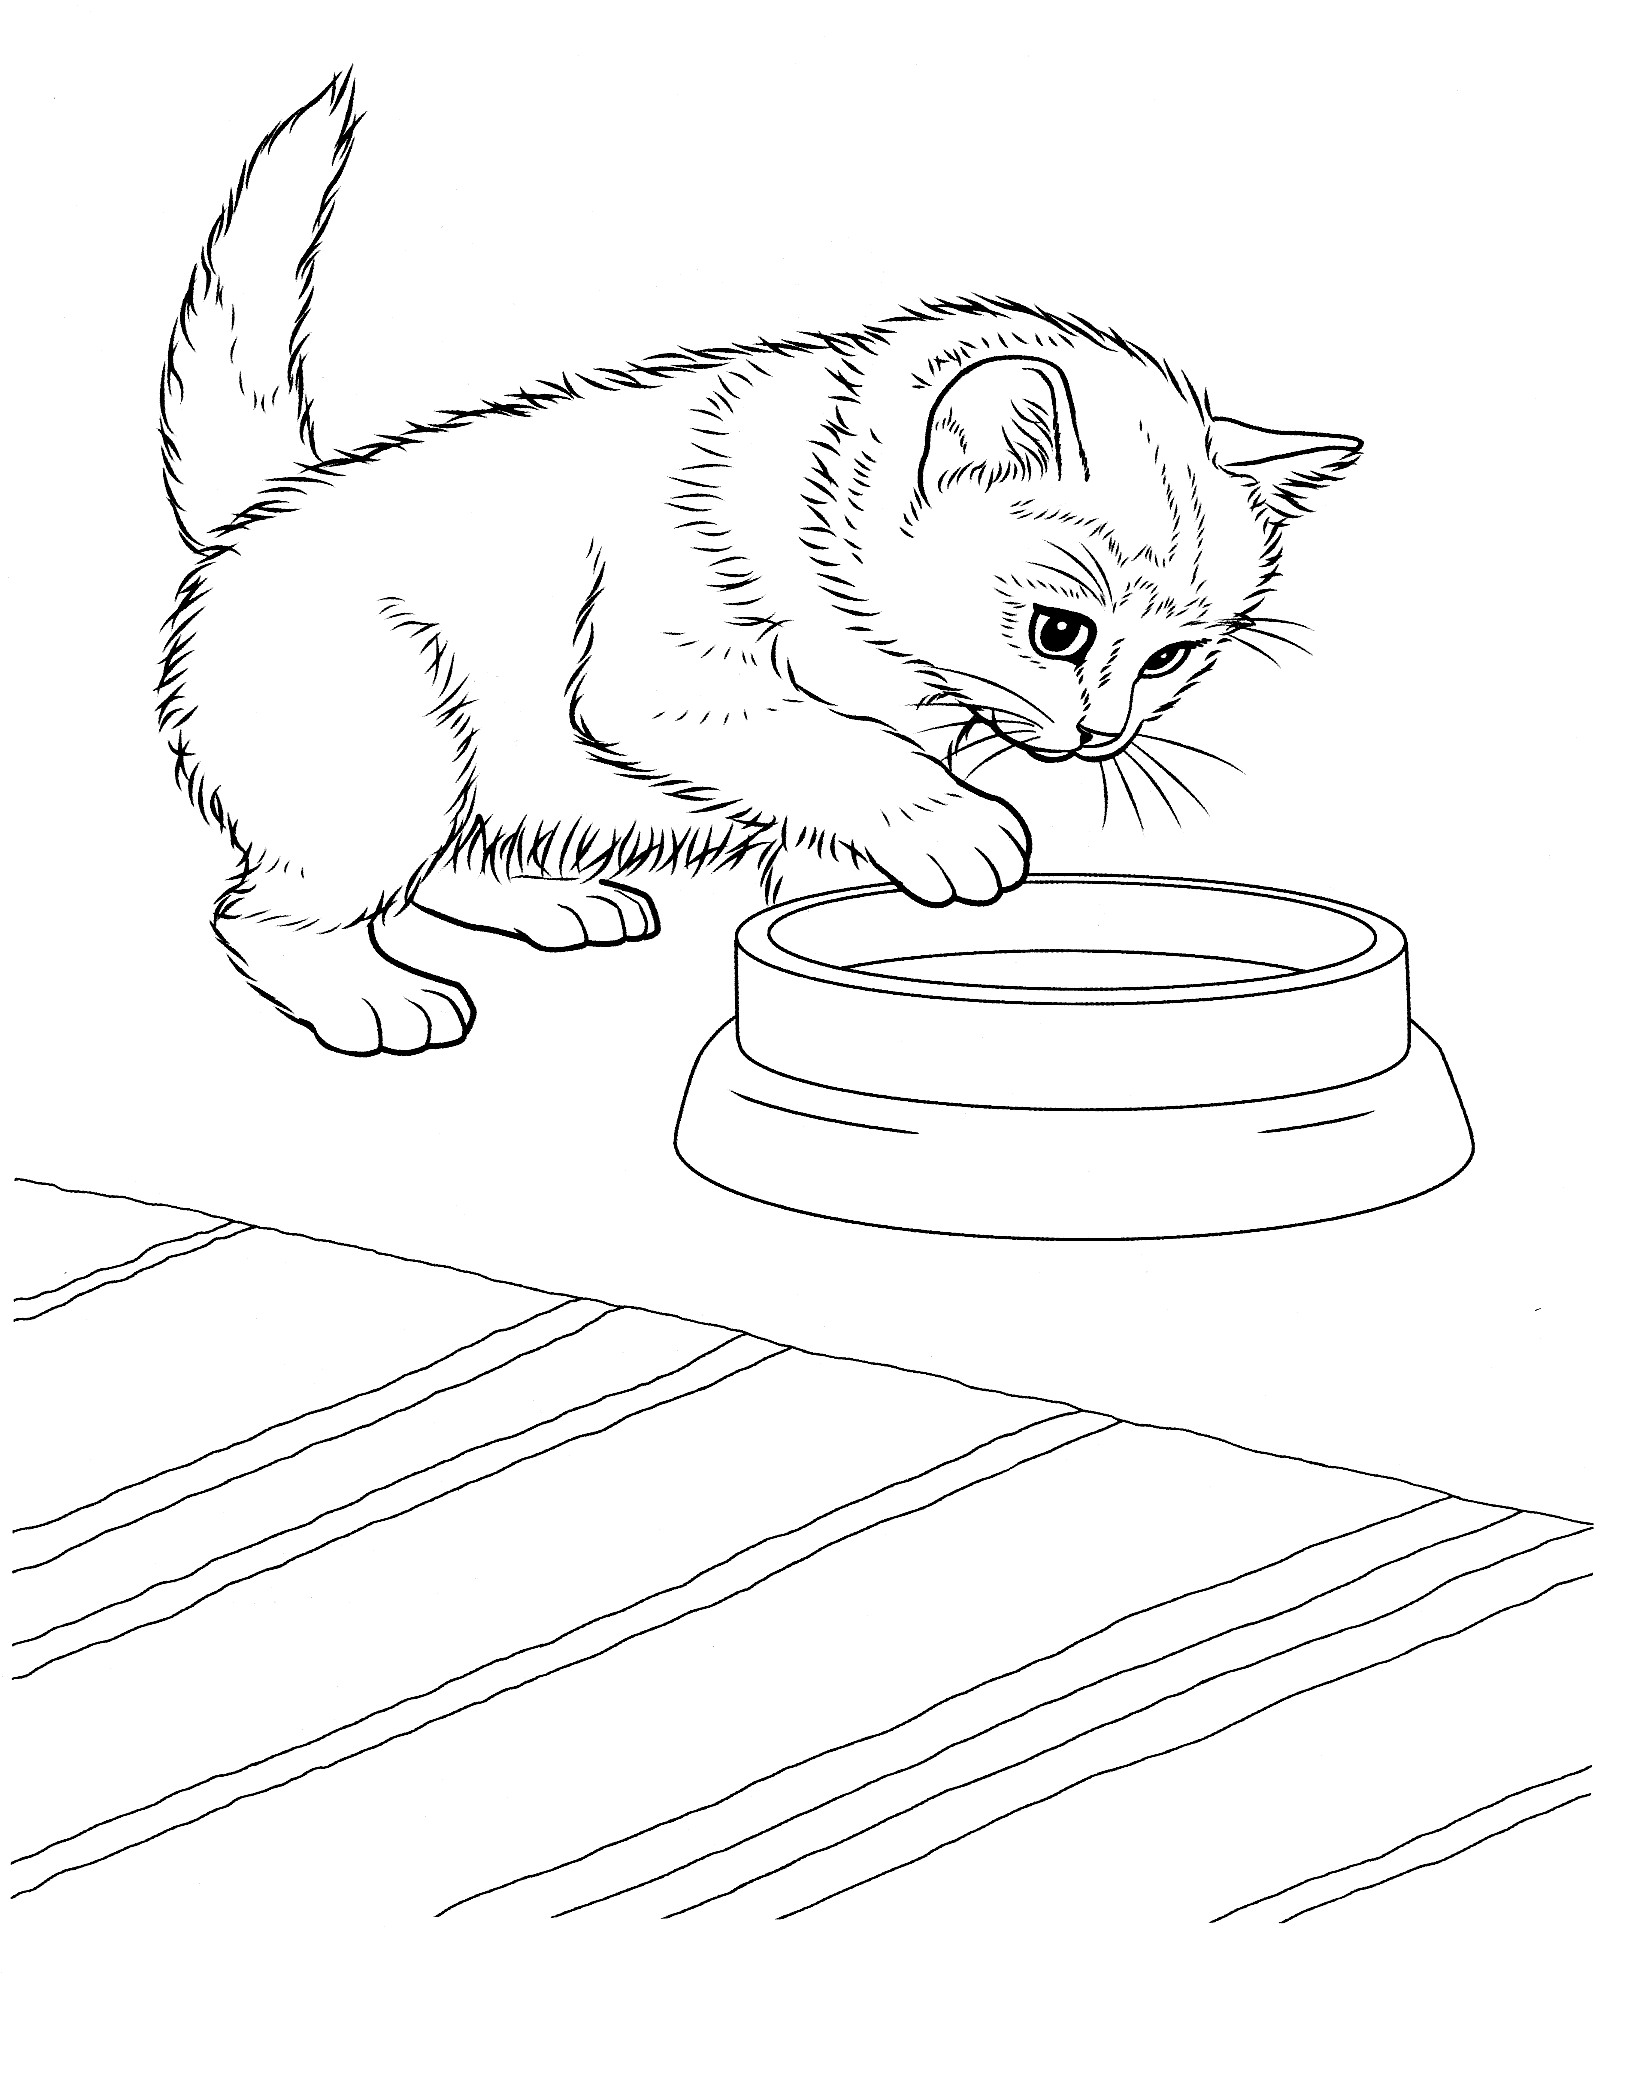 kittens coloring pages to print kitten coloring pages coloring kittens pages to print